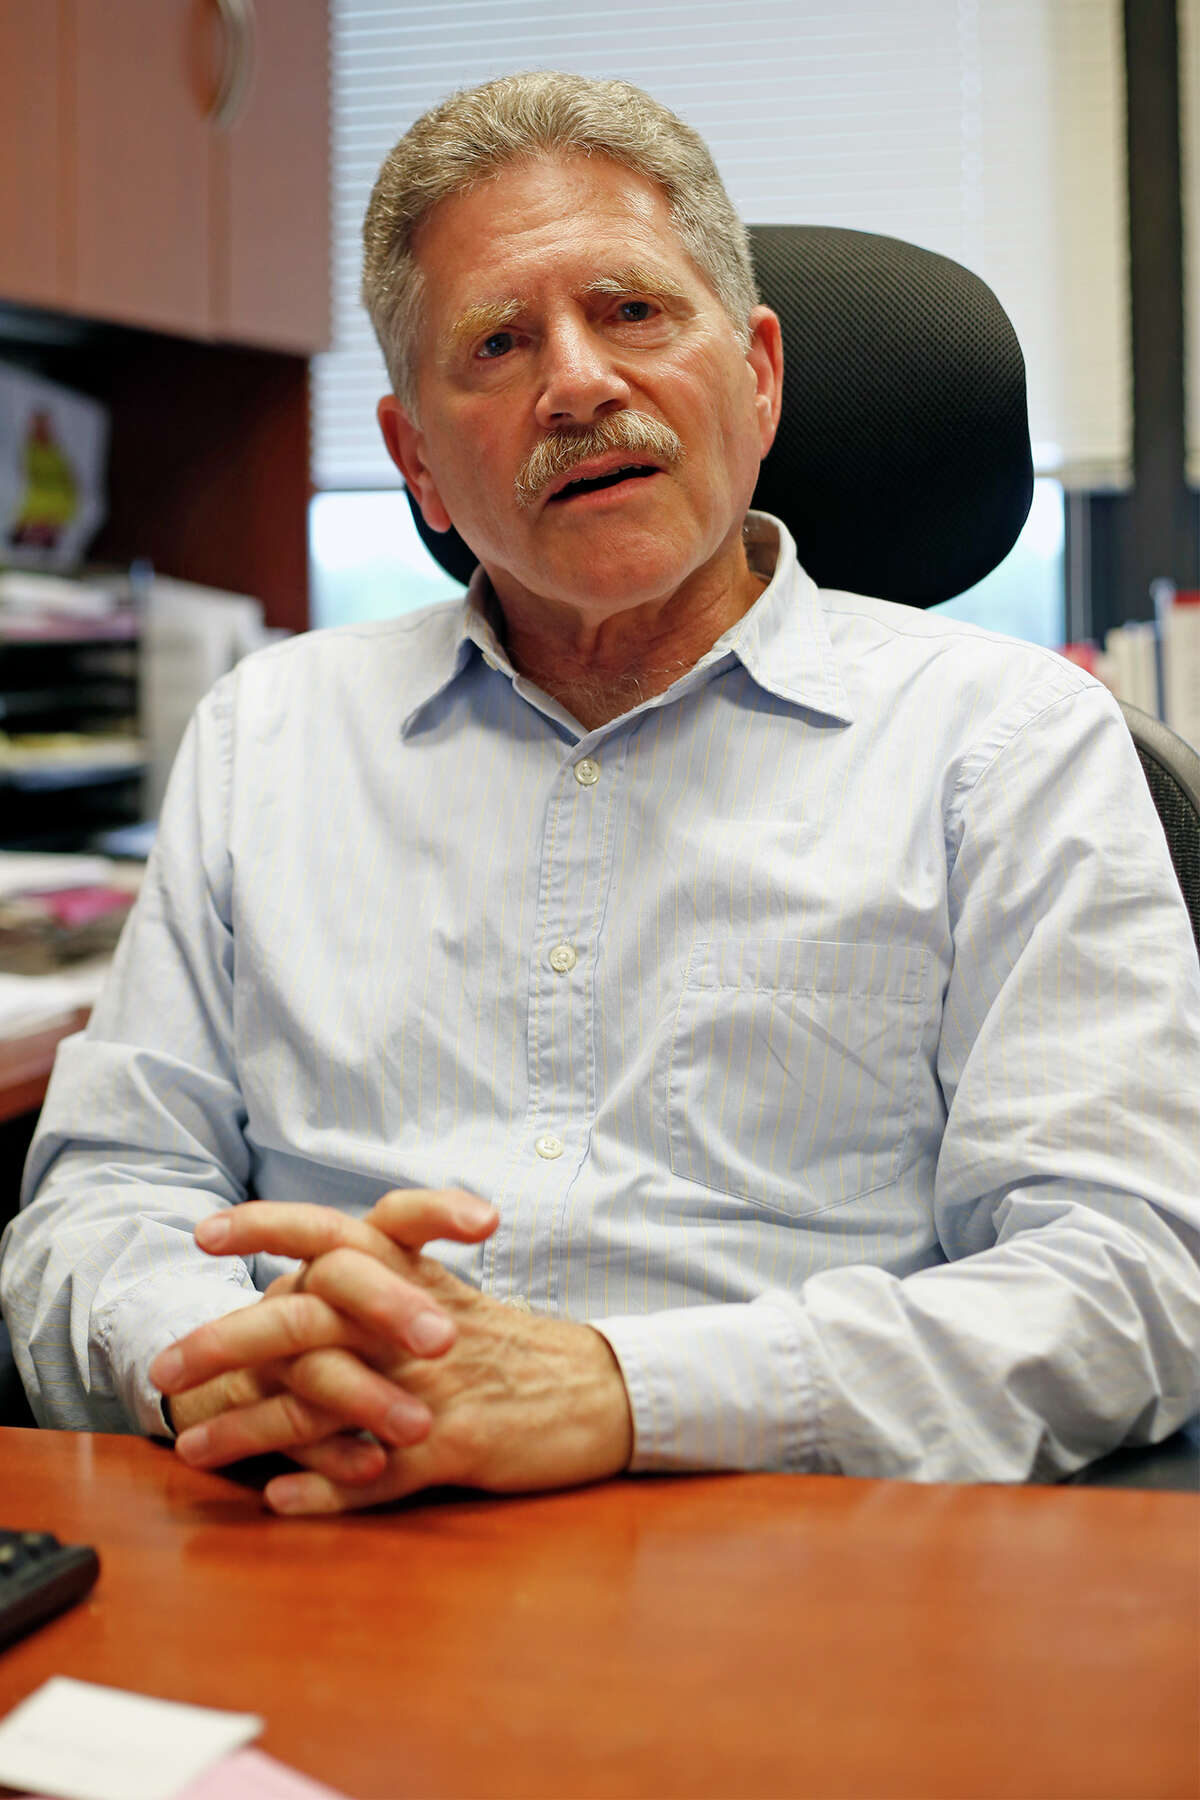 Bob Freeman sits at his desk on Friday, August 15, 2014 in Albany, N.Y. (Tom Brenner/ Special to the Times Union)